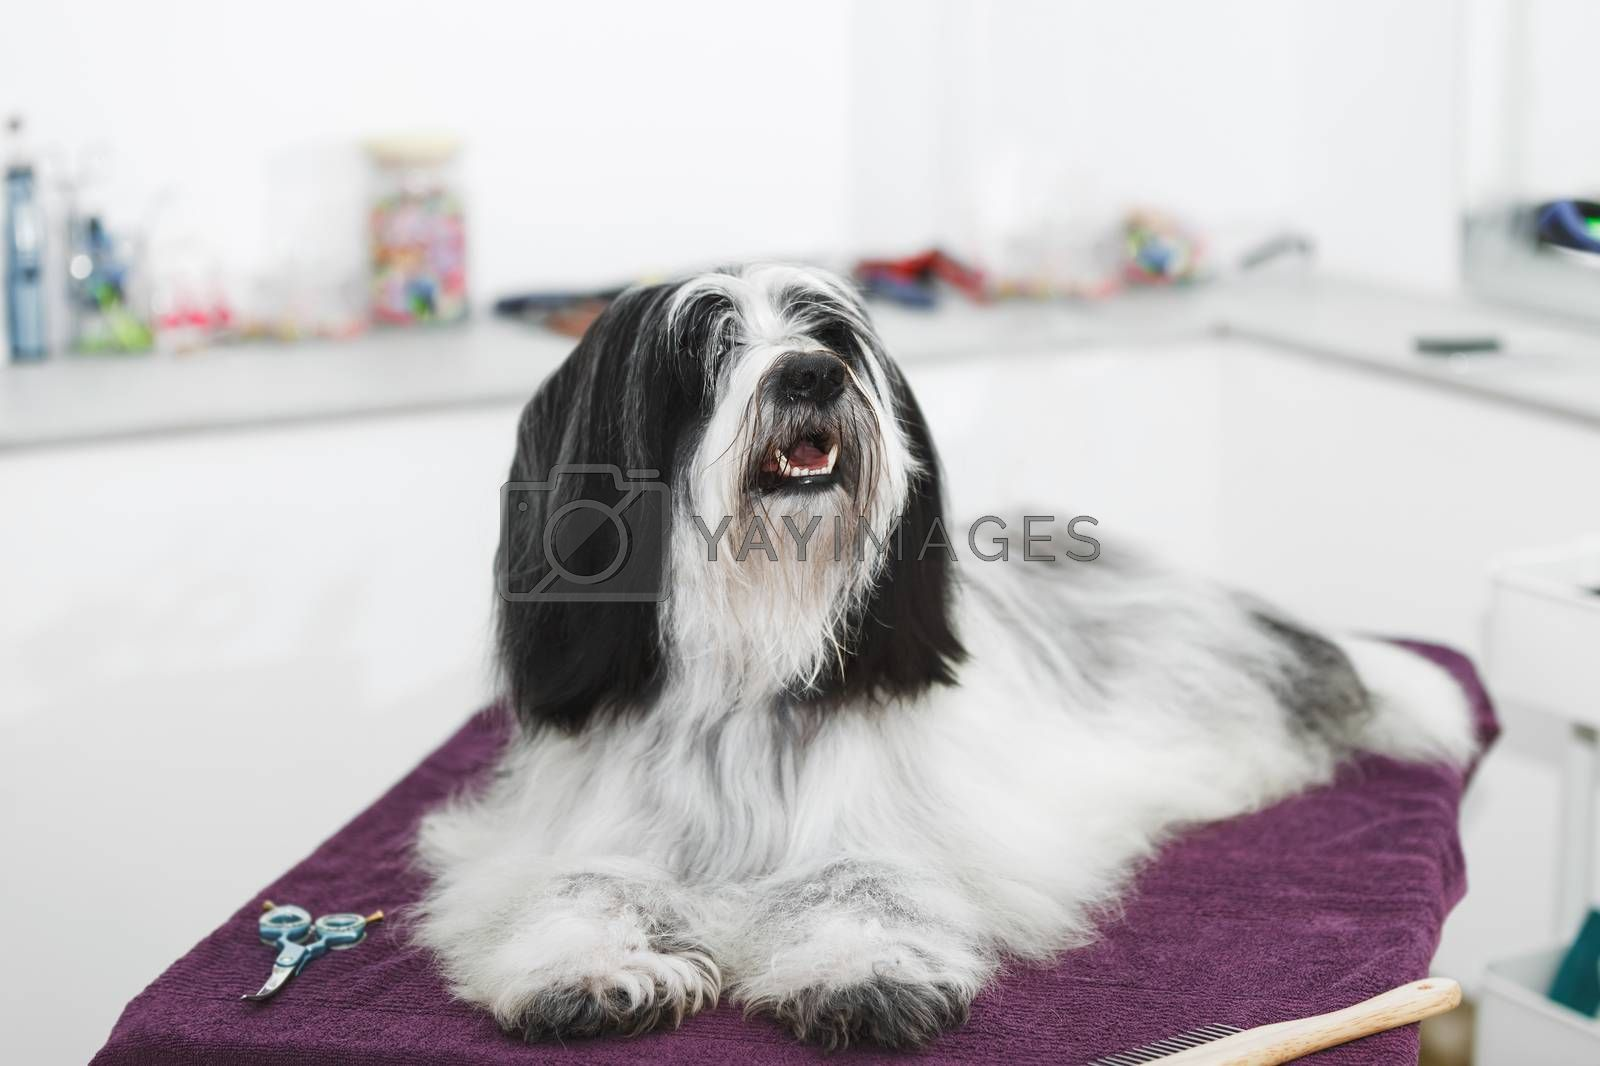 Beautiful long haired Tibetan terrier dog laying on a towel after a bath  procedure in grooming salon, selective focus